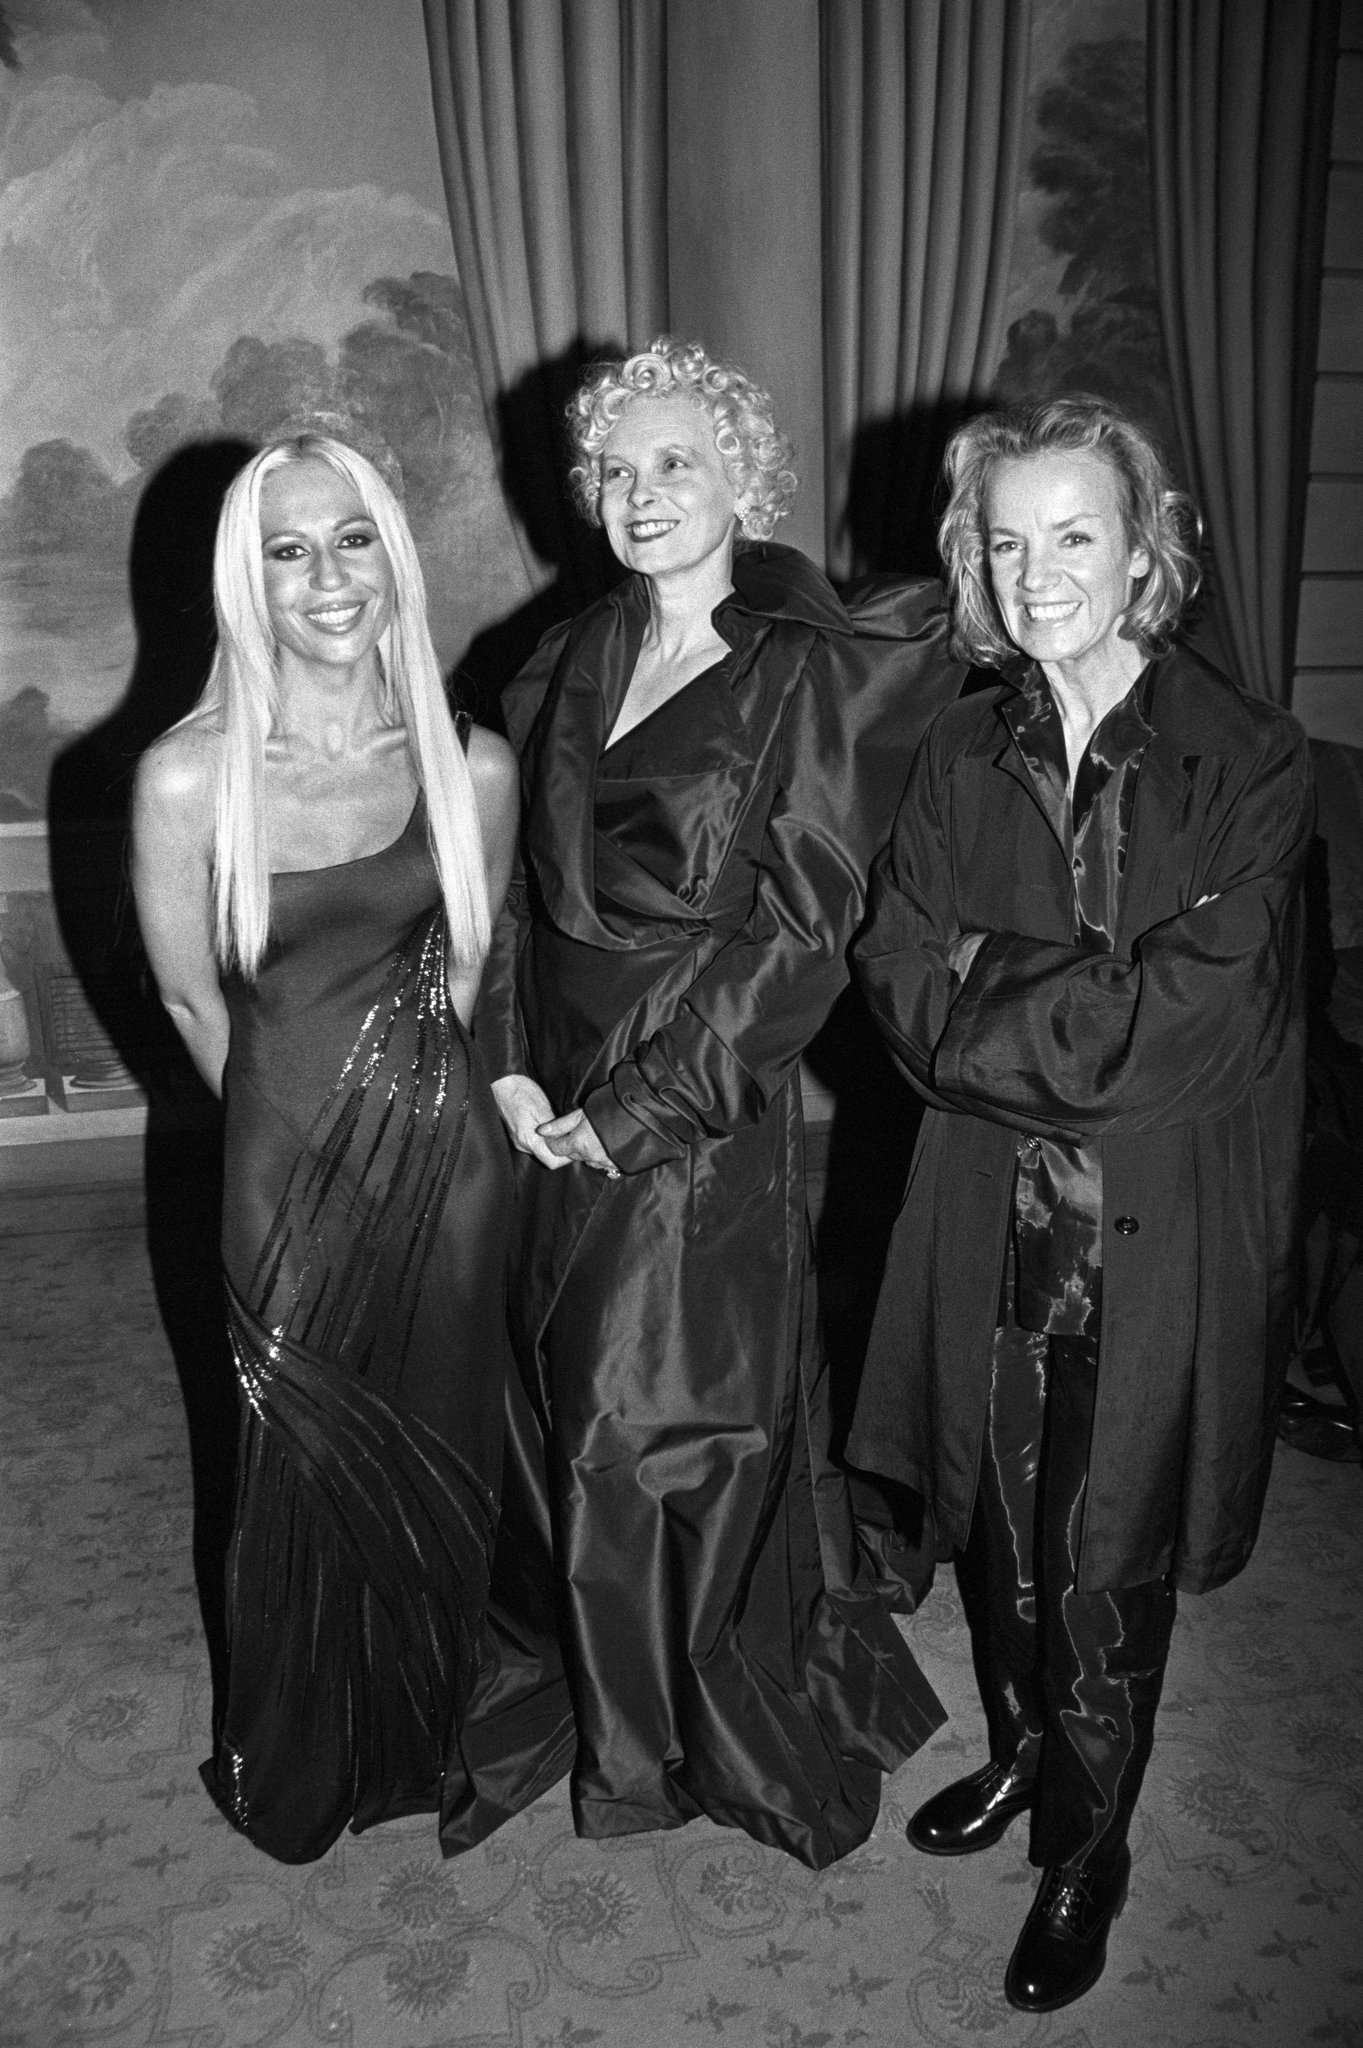 Donatella Versace, Vivienne Westwood and Jil Sander pose and smile at an event in New York where they received 'Fashion Legend' awards